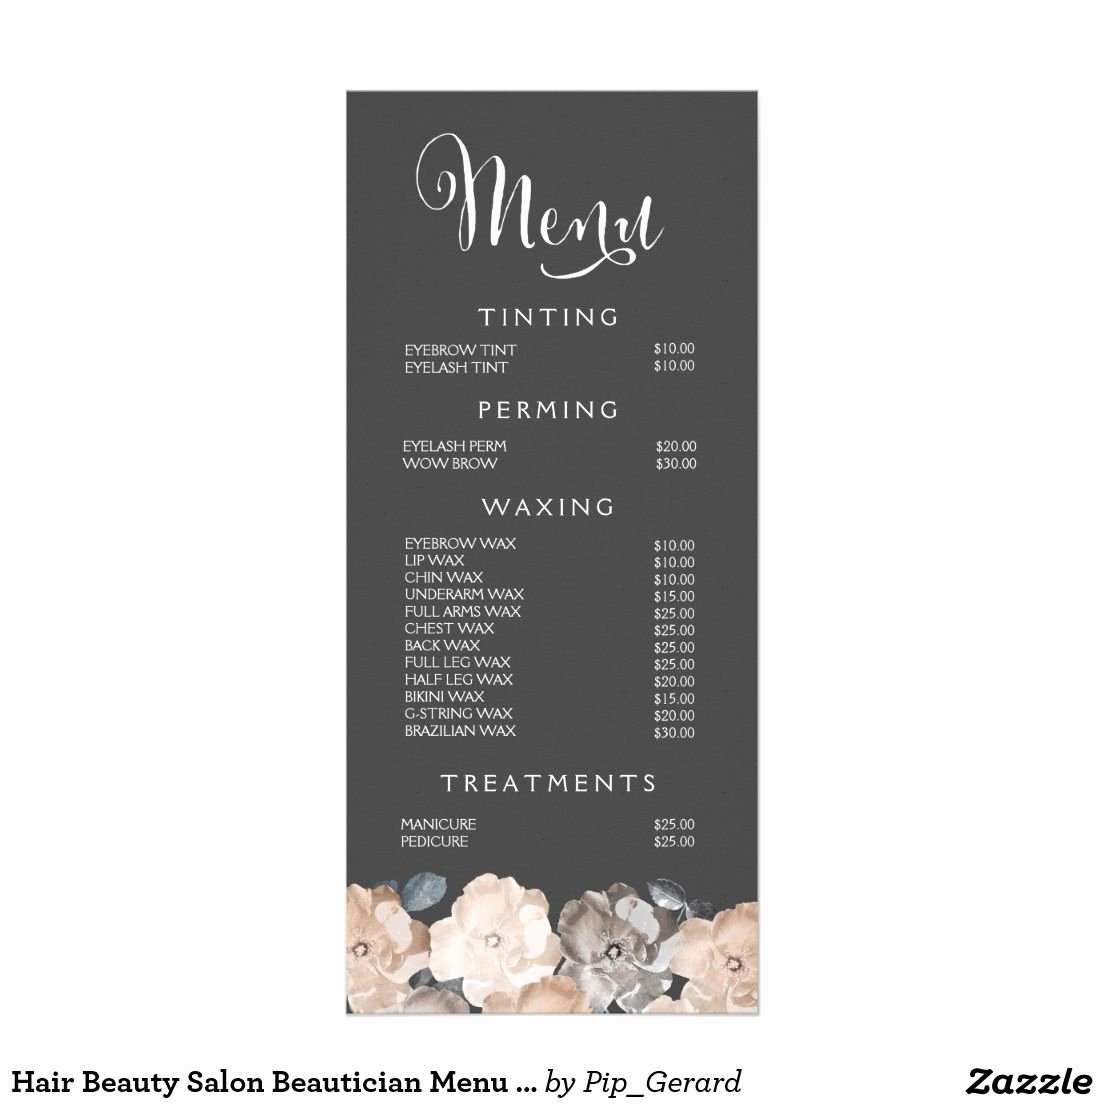 Nail Price List Template Elegant Spa Menu Template Google Search Spa Ideas